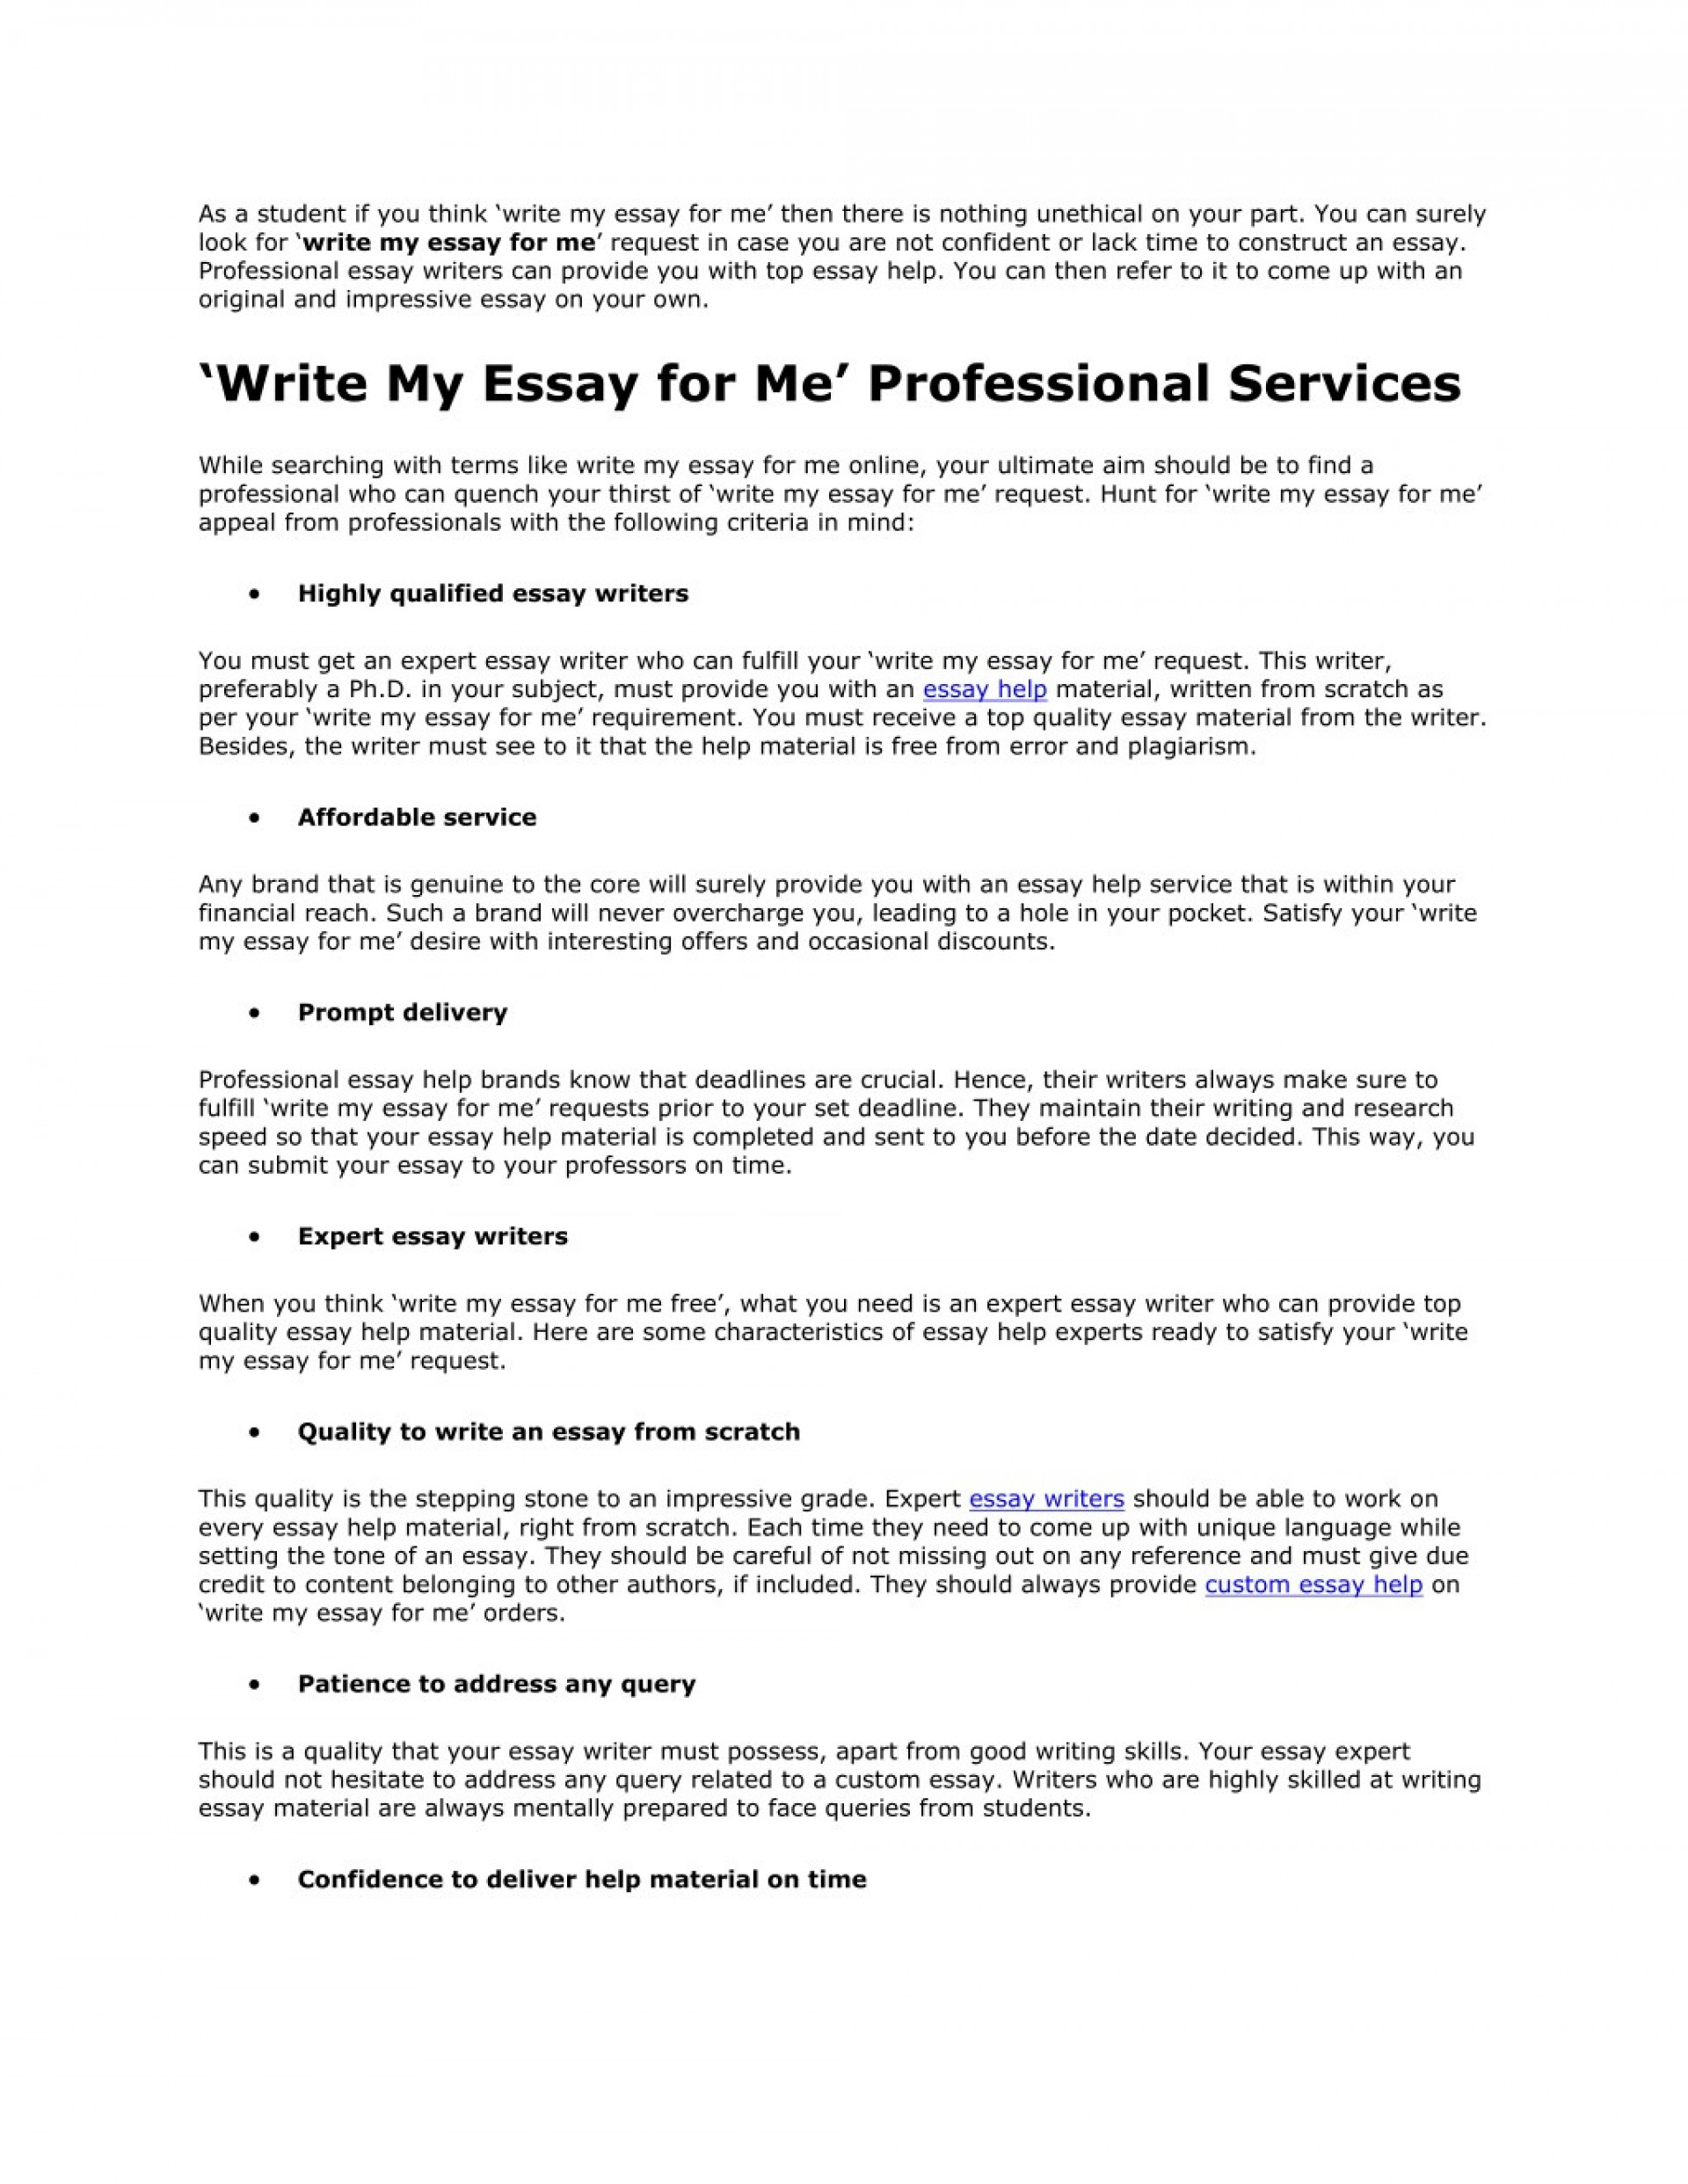 017 Write My Essay For Me Example As Student If You Think Surprising Discount Code Please 4 Me.org 1920